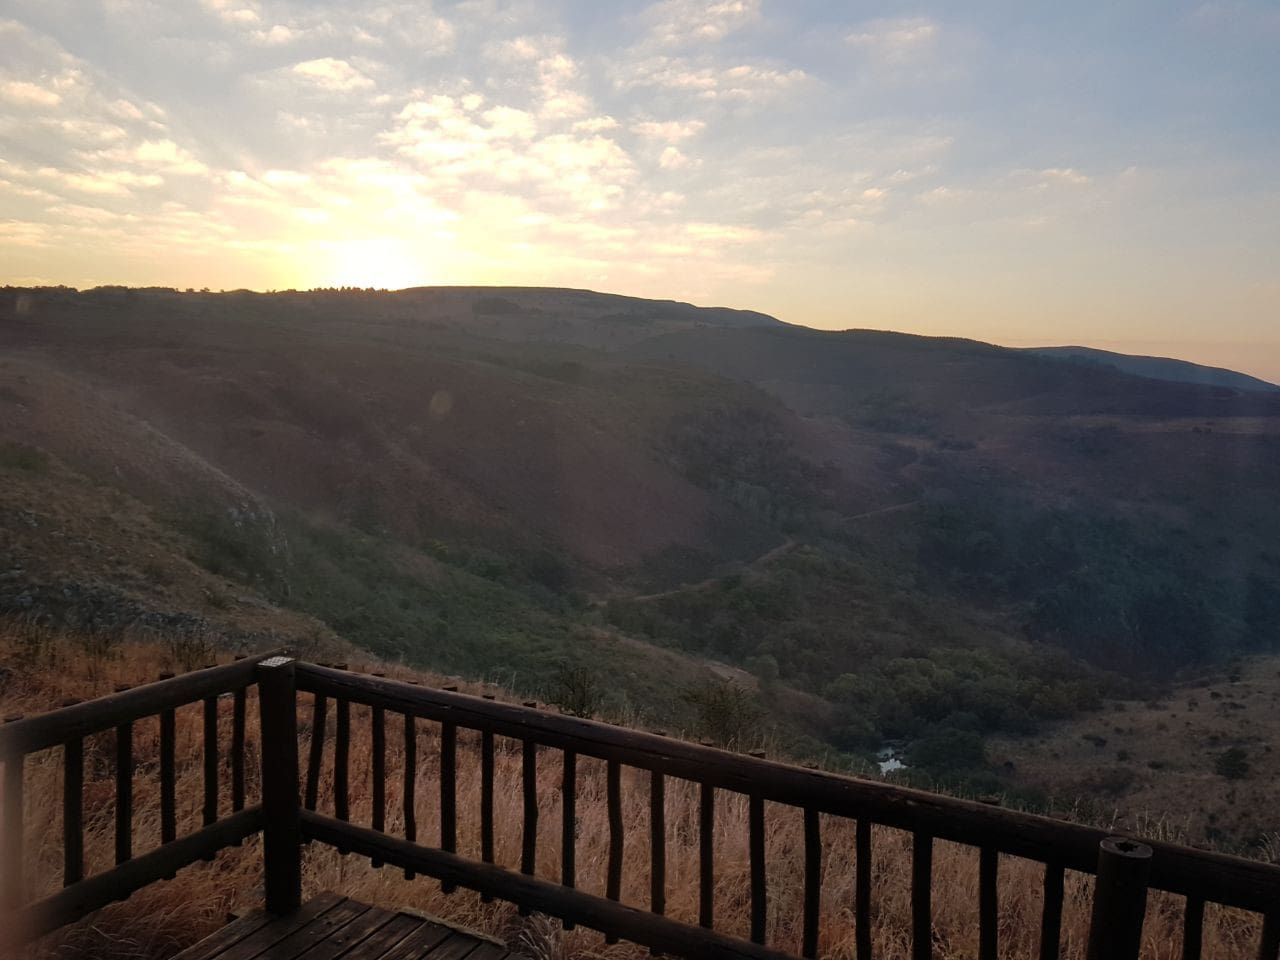 View at sunrise